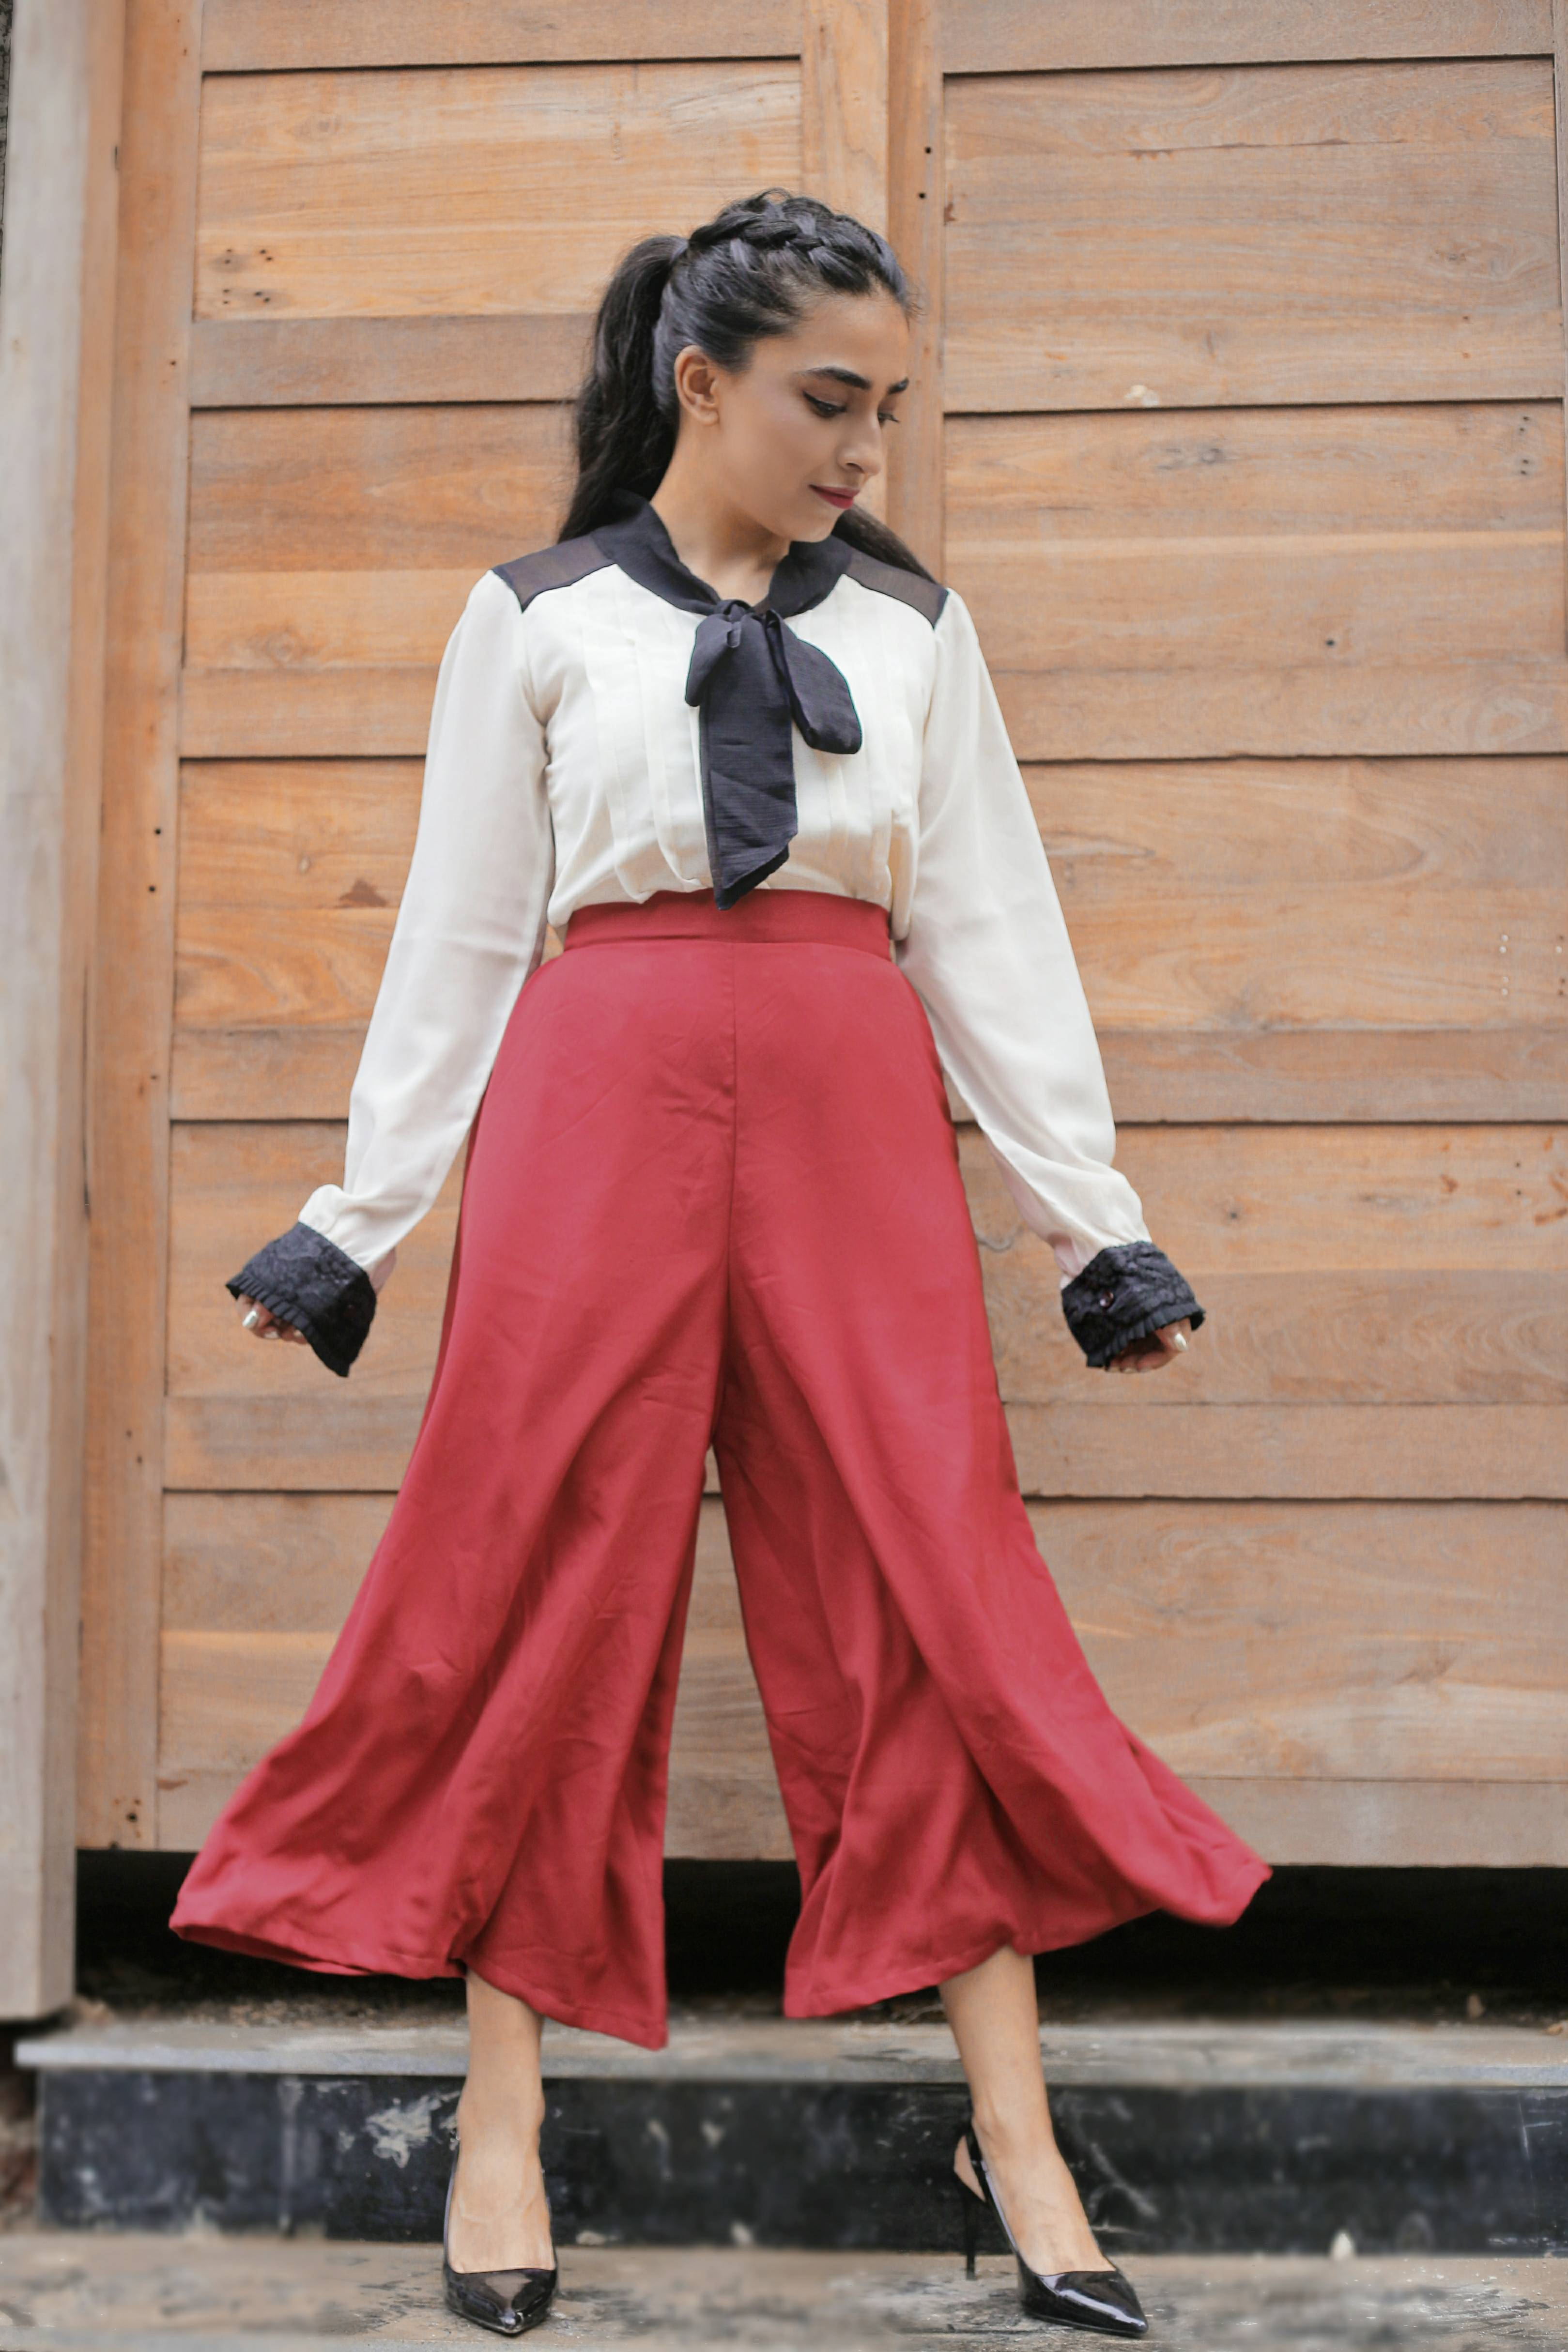 culottes, rust pants, red pants, work look, formal look, office look, work style inspo, officewear, friday dressing, miss chase india, street style